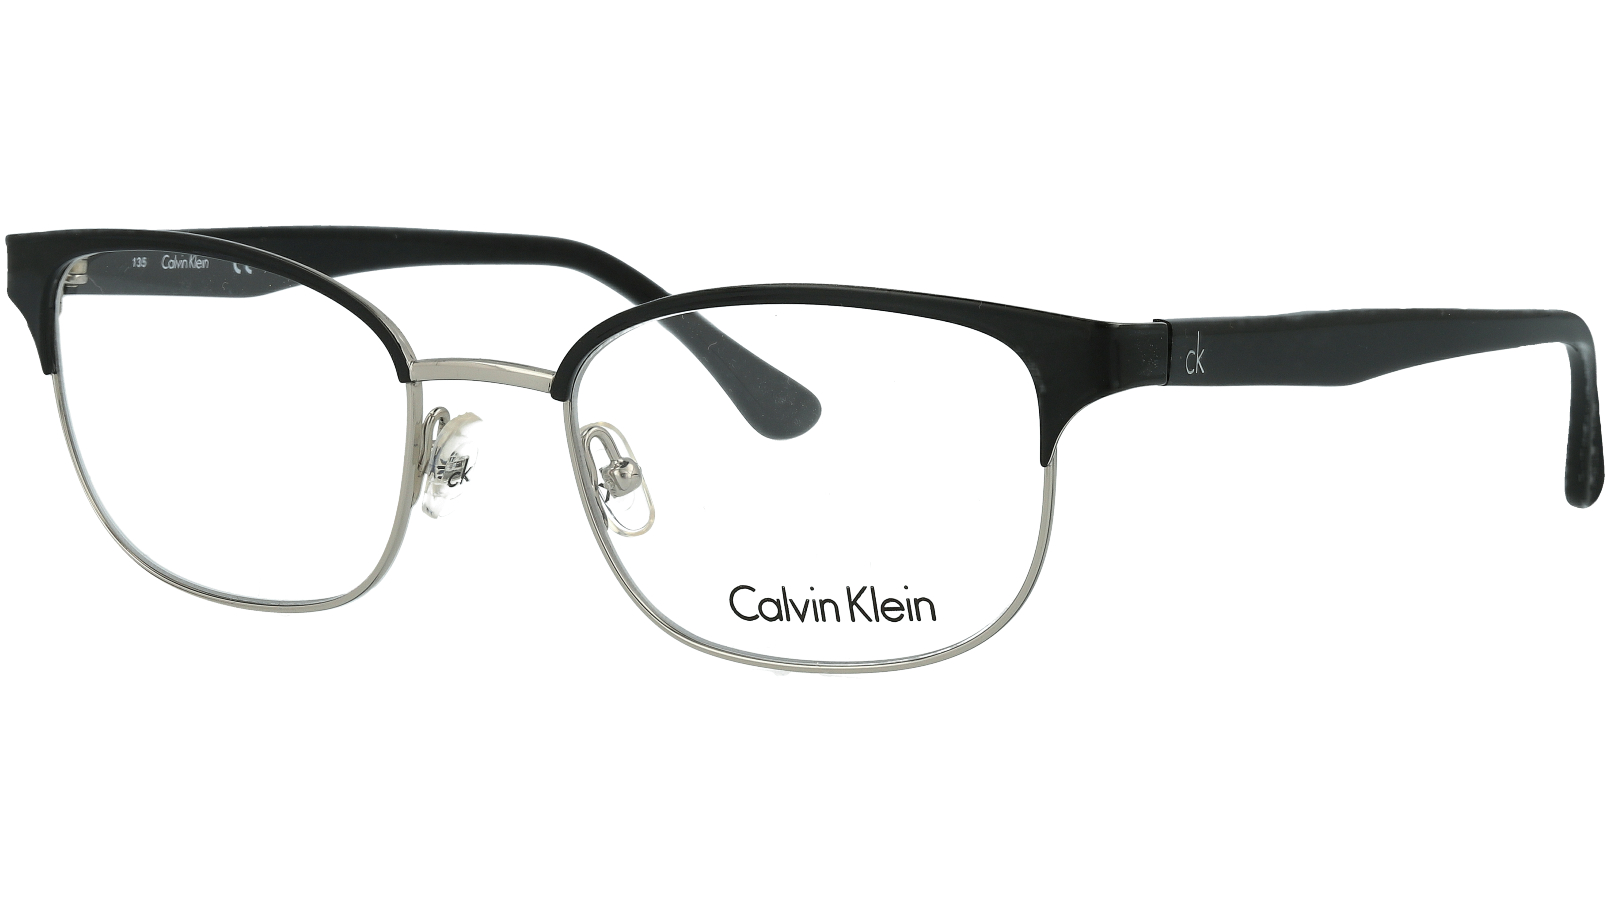 CALVIN KLEIN CK5445 001 51 BLACK Glasses